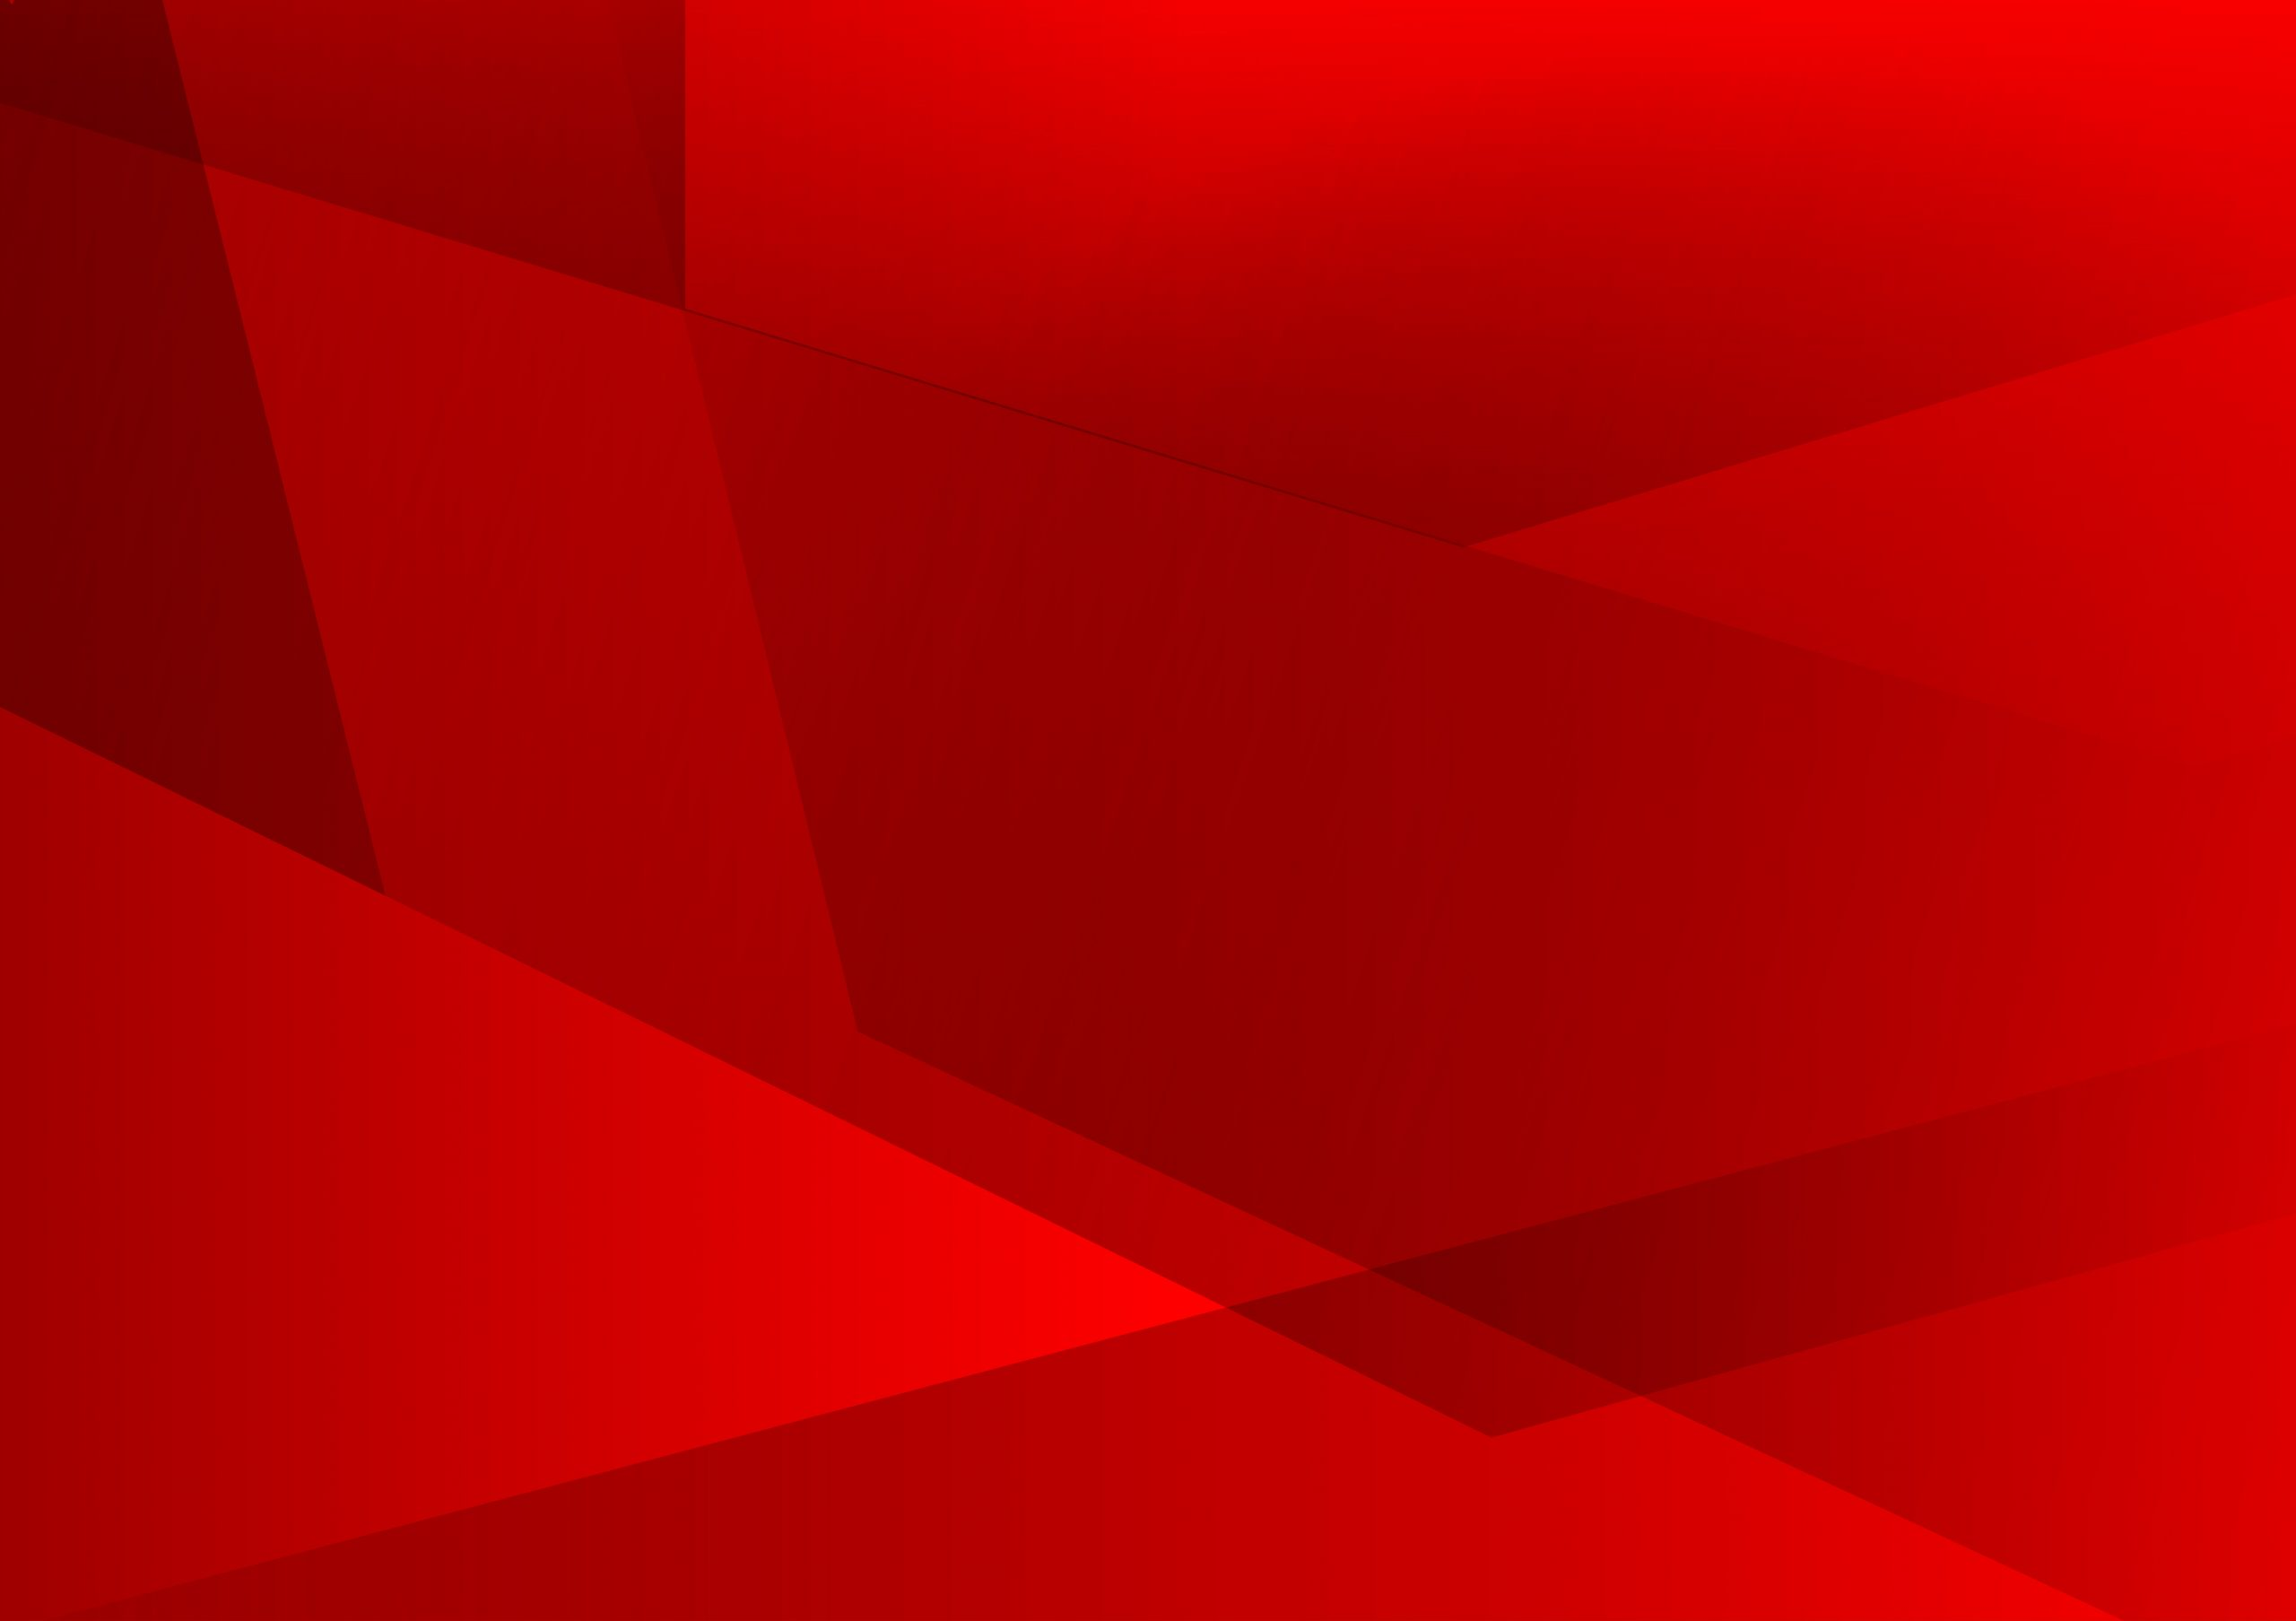 Red texture 02